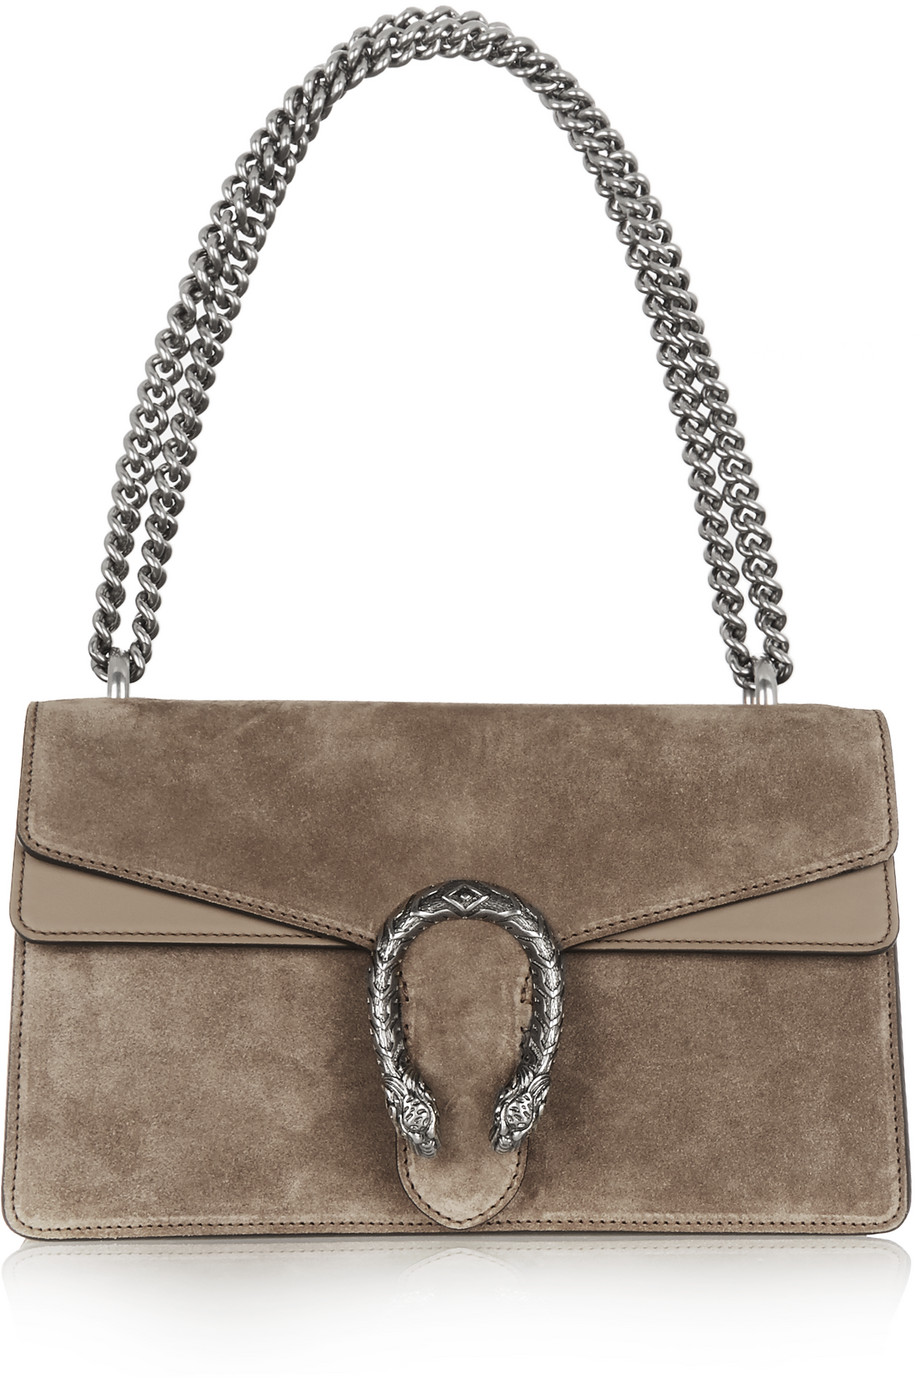 Gucci Dionysus Small Suede Shoulder Bag, Women's